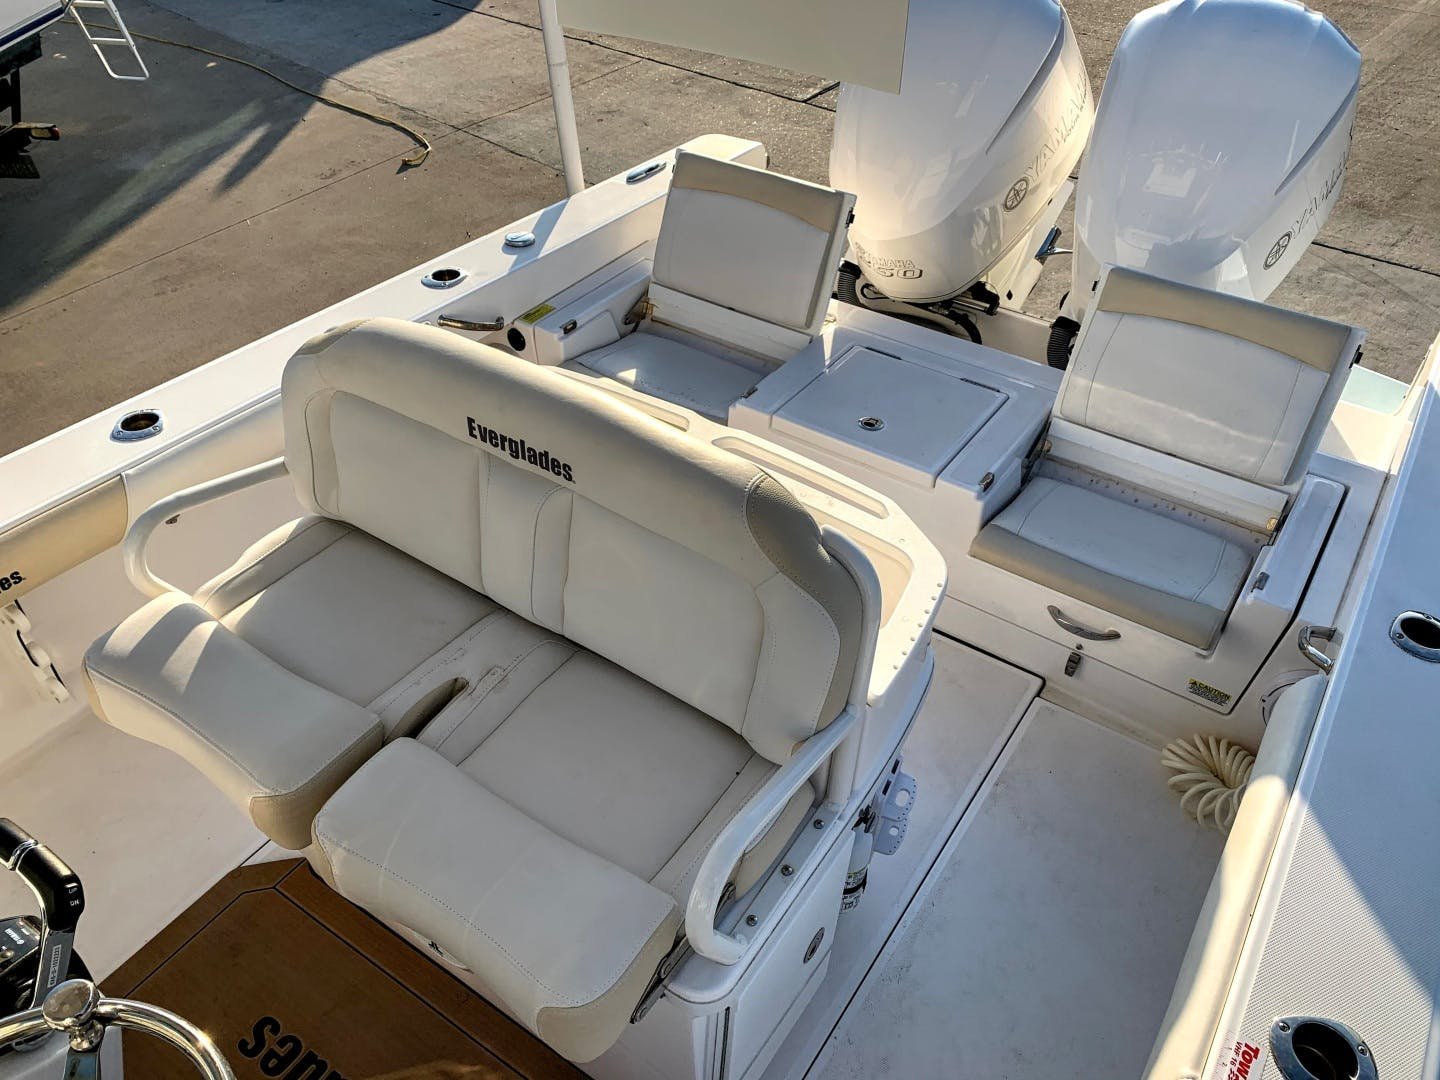 2018 Everglades 27' 273 Center Console No Name | Picture 2 of 20